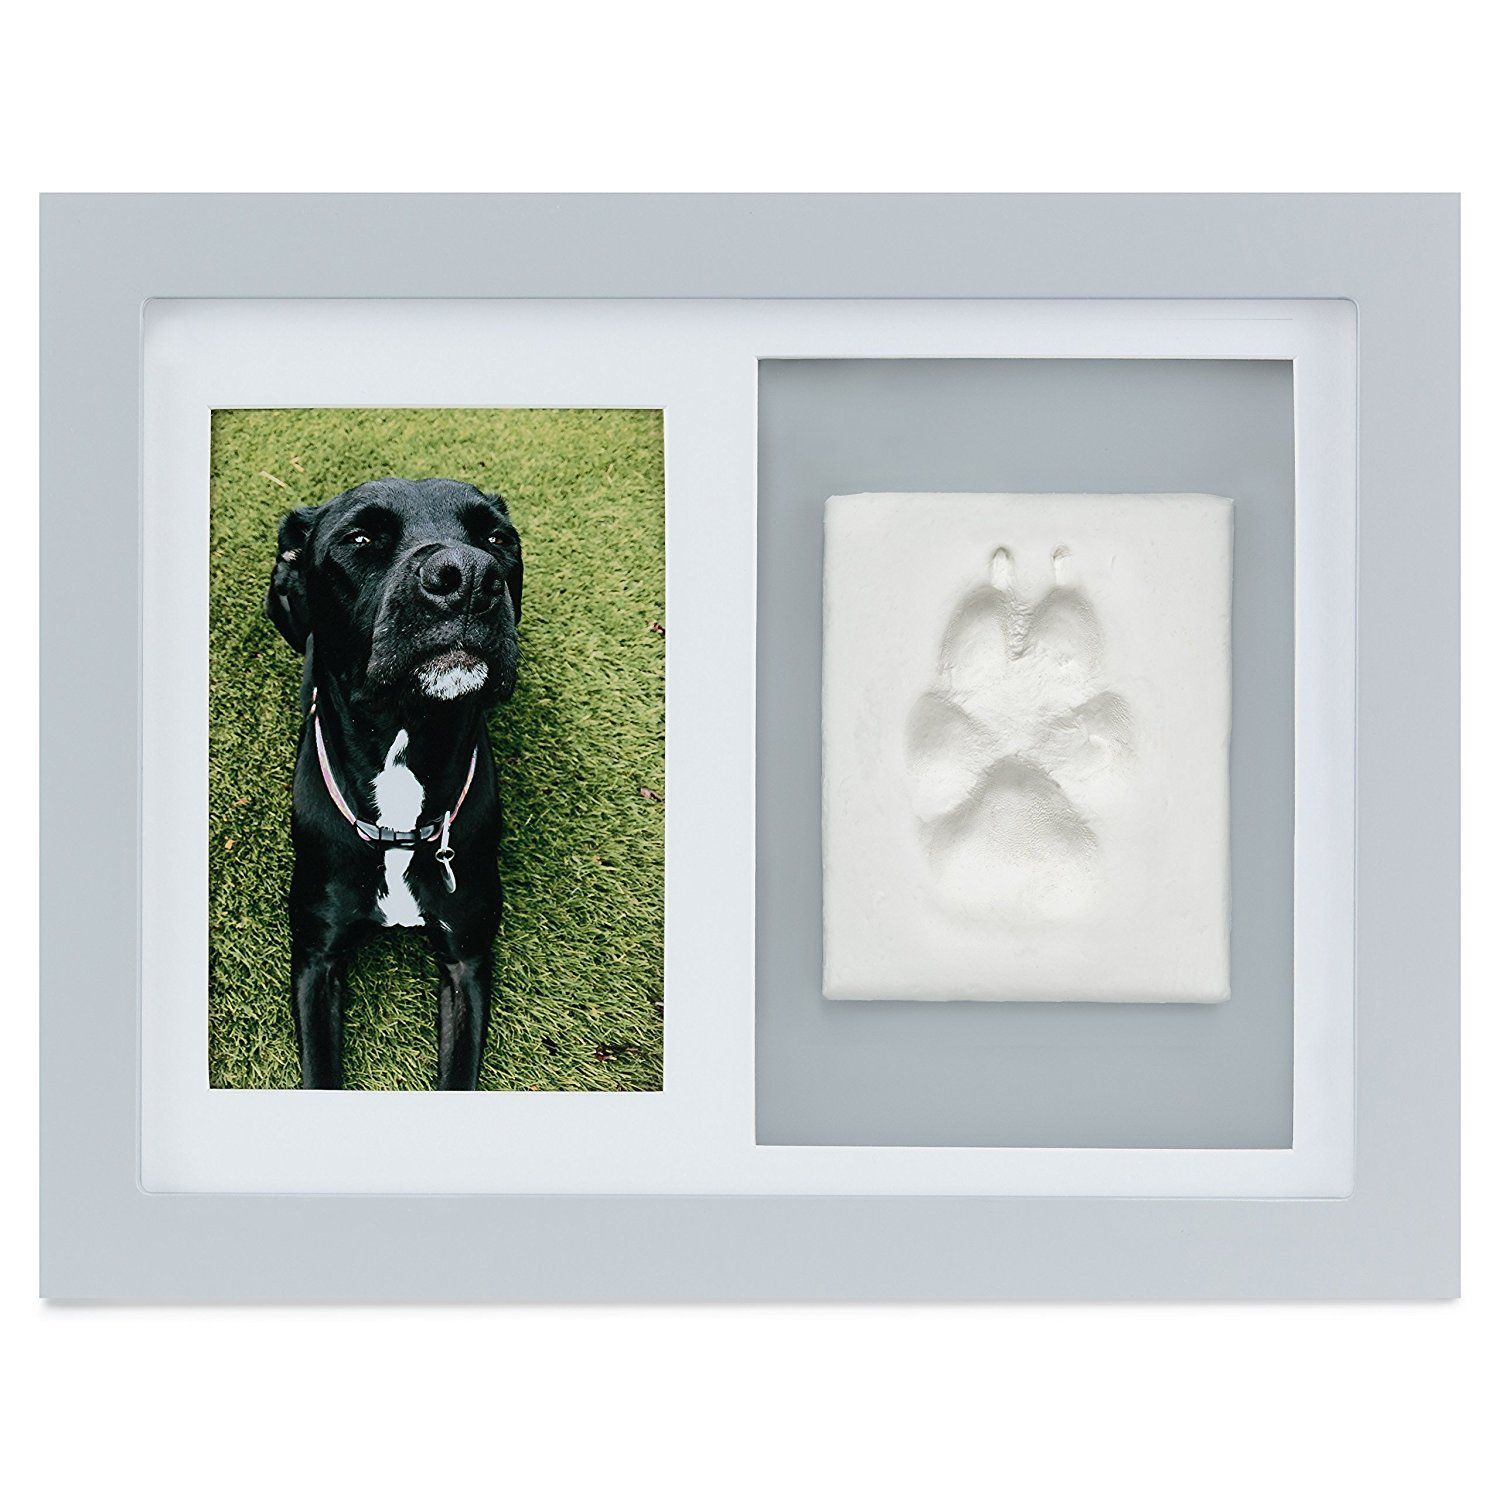 b93a2205bbd7 Paw Prints Keepsake Photo Frame by Better World Pets – Holds 4 x 6 inch  Picture – Memorial Clay Imprint Kit – For Dogs and Cats – Perfect for Pet  Lovers >>> ...